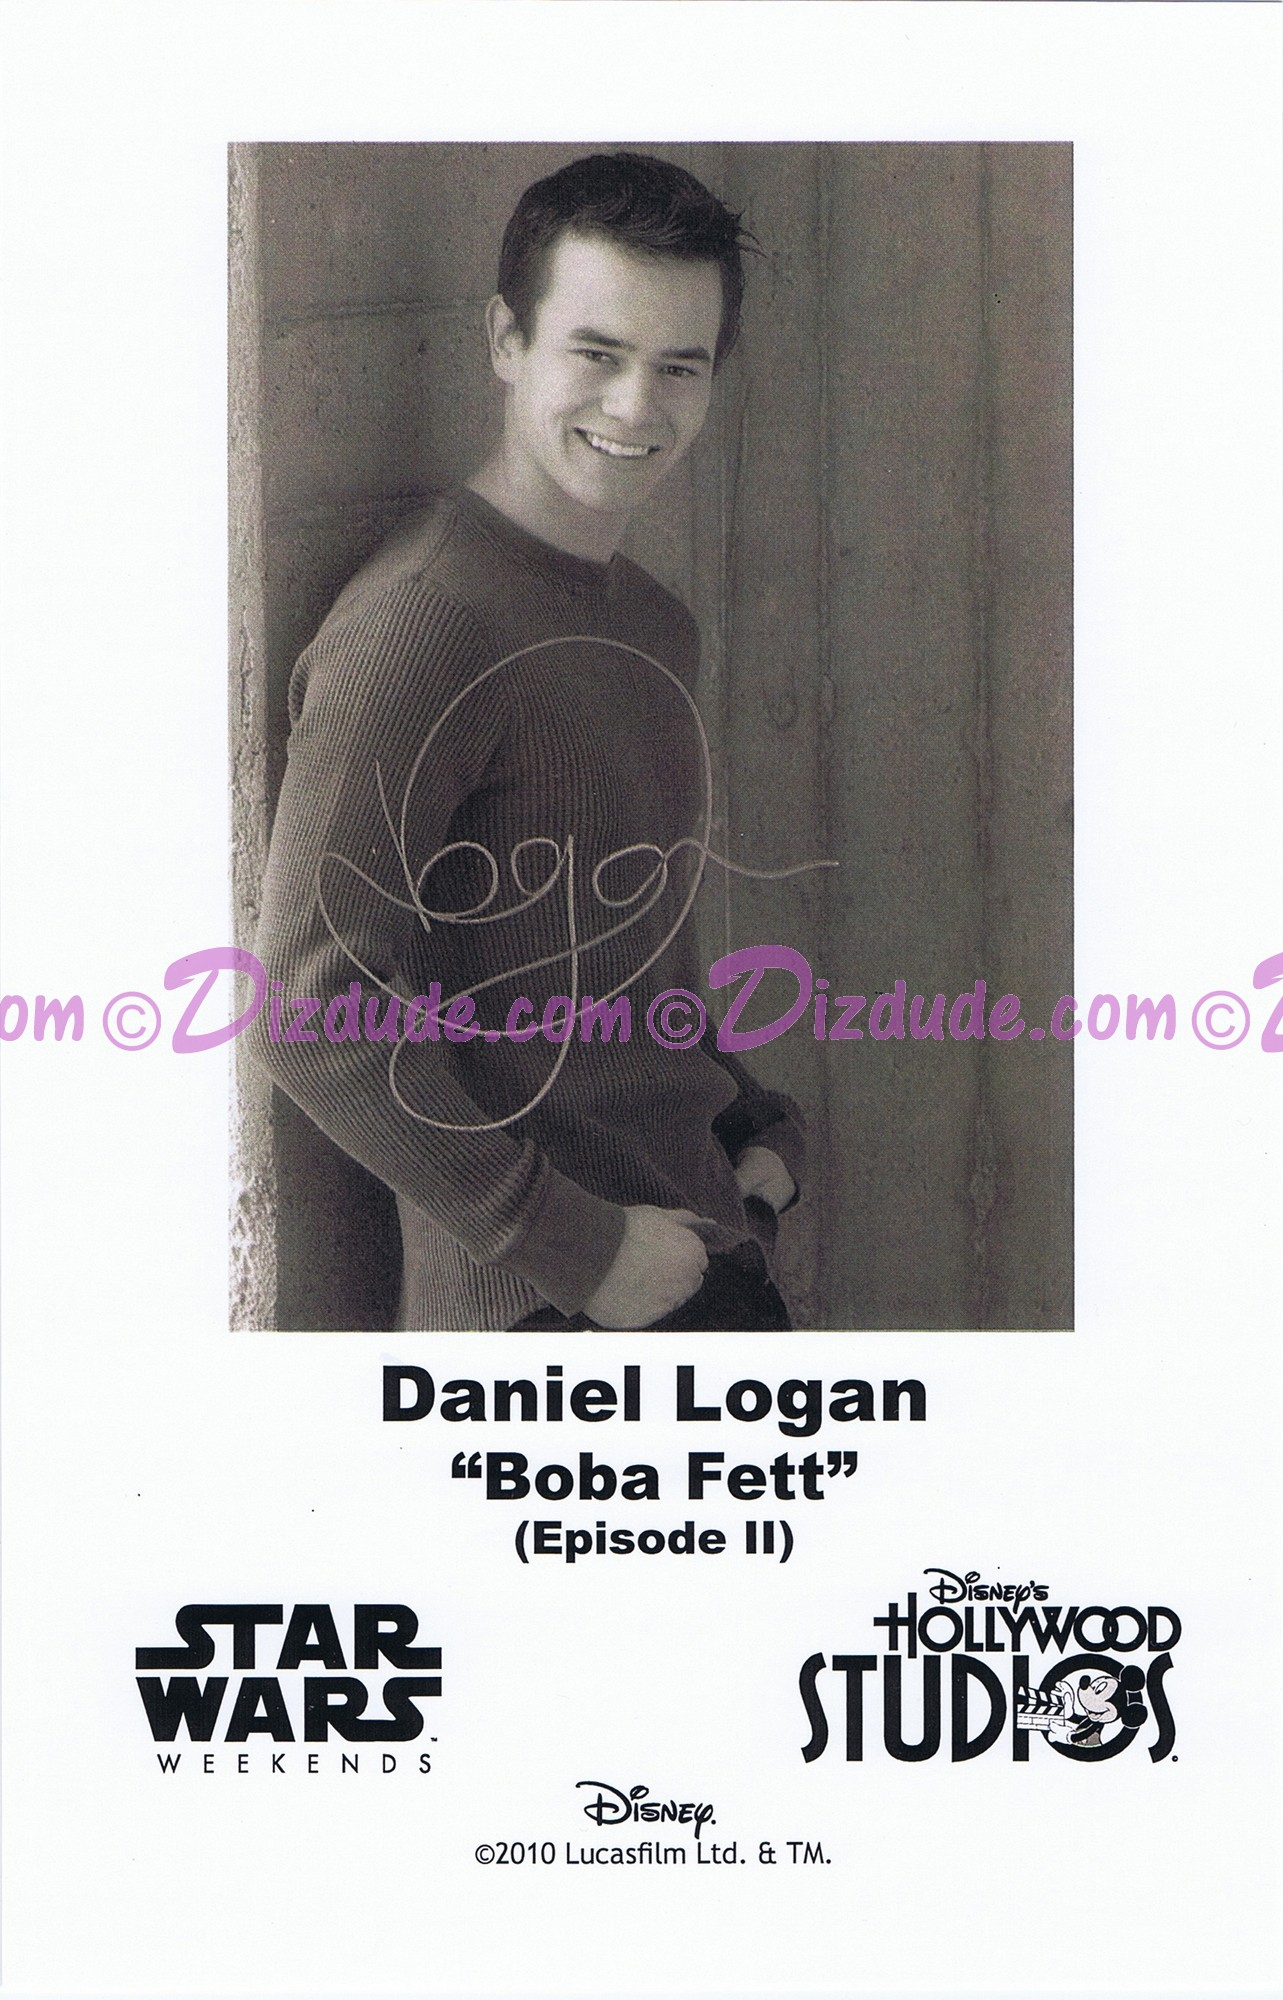 Daniel Logan who played Young Boba Fett Presigned Official Star Wars Weekends 2010 Celebrity Collector Photo © Dizdude.com